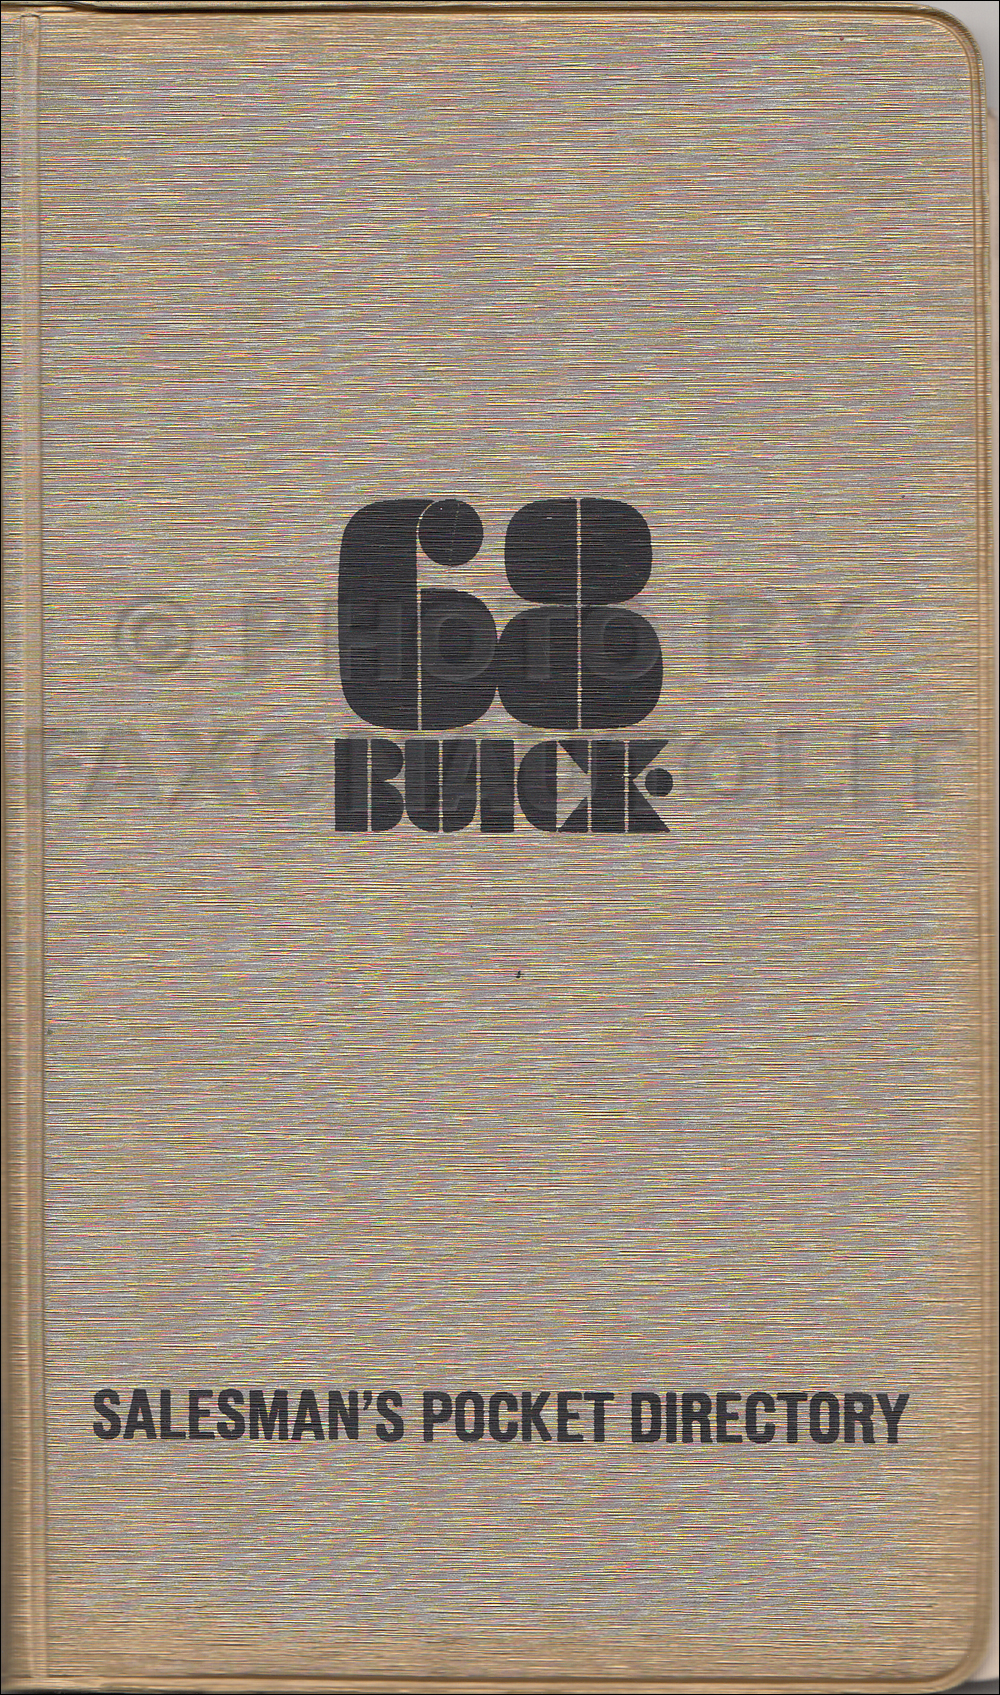 1968 Buick Salesman's Pocket Directory Original